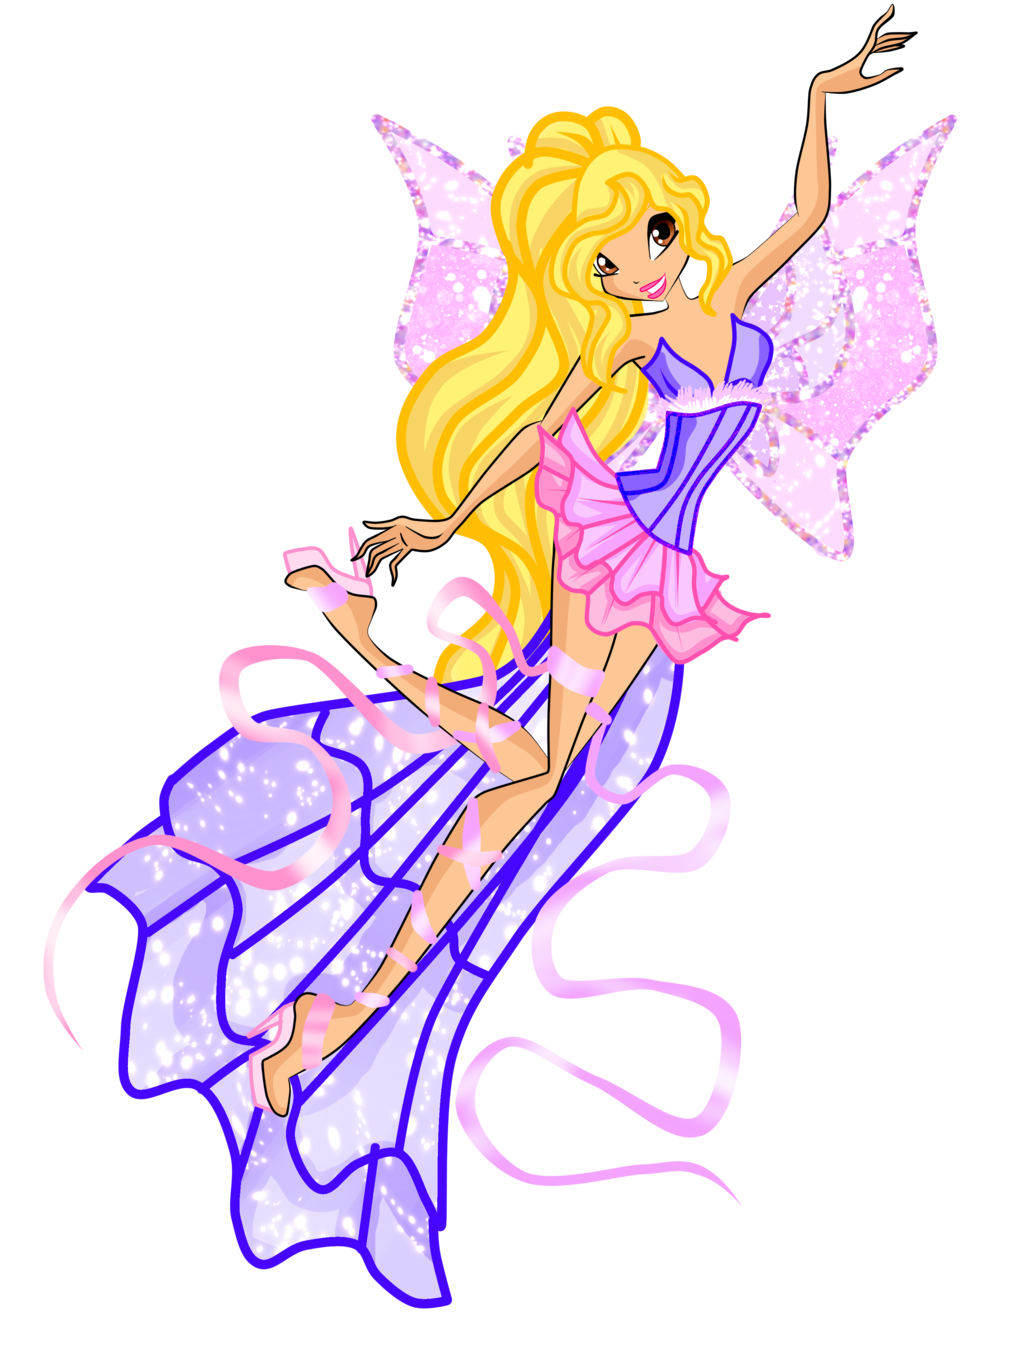 winx princess wallpaper